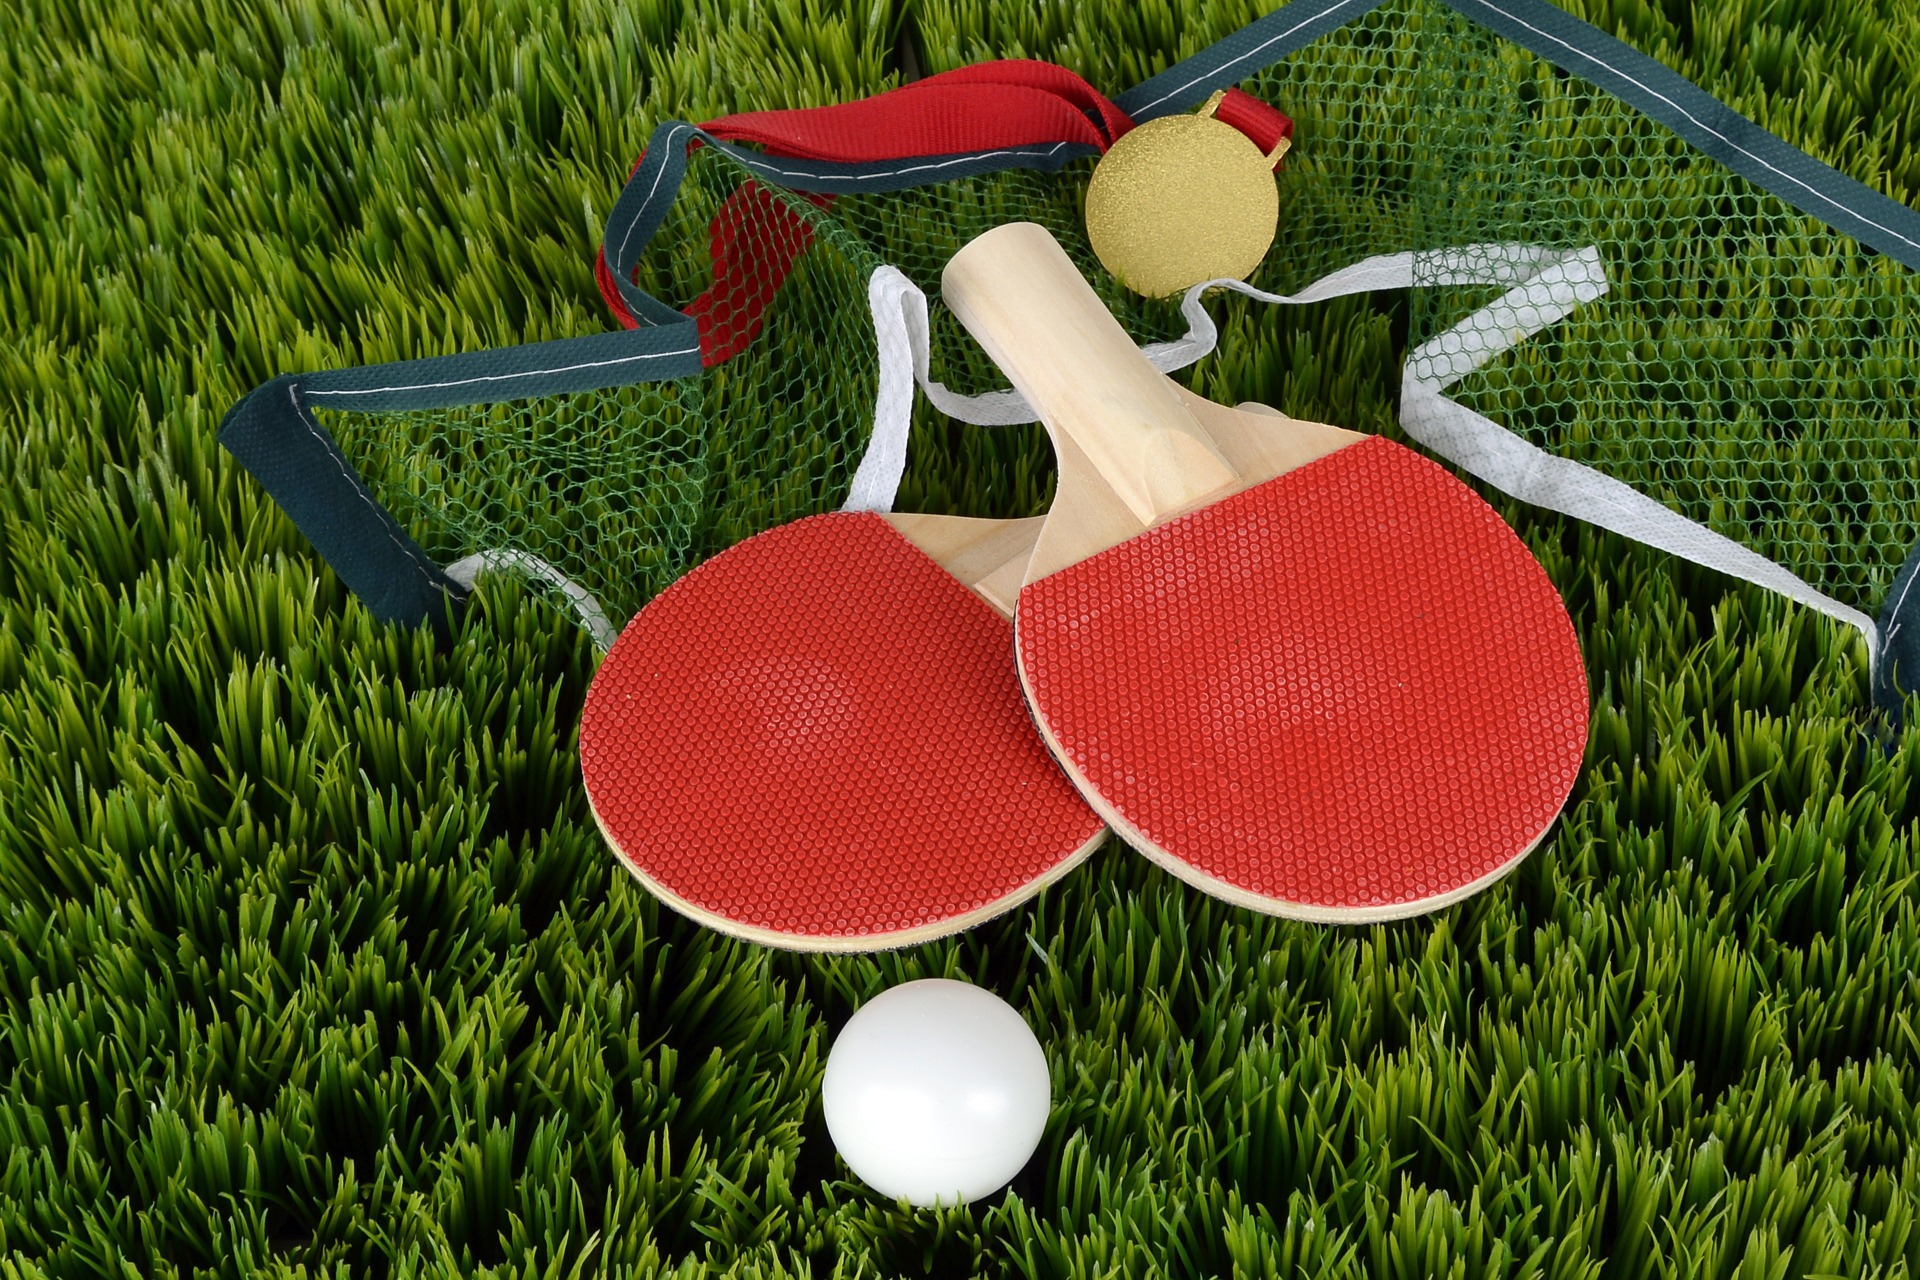 Best Tabble Tennis Paddle